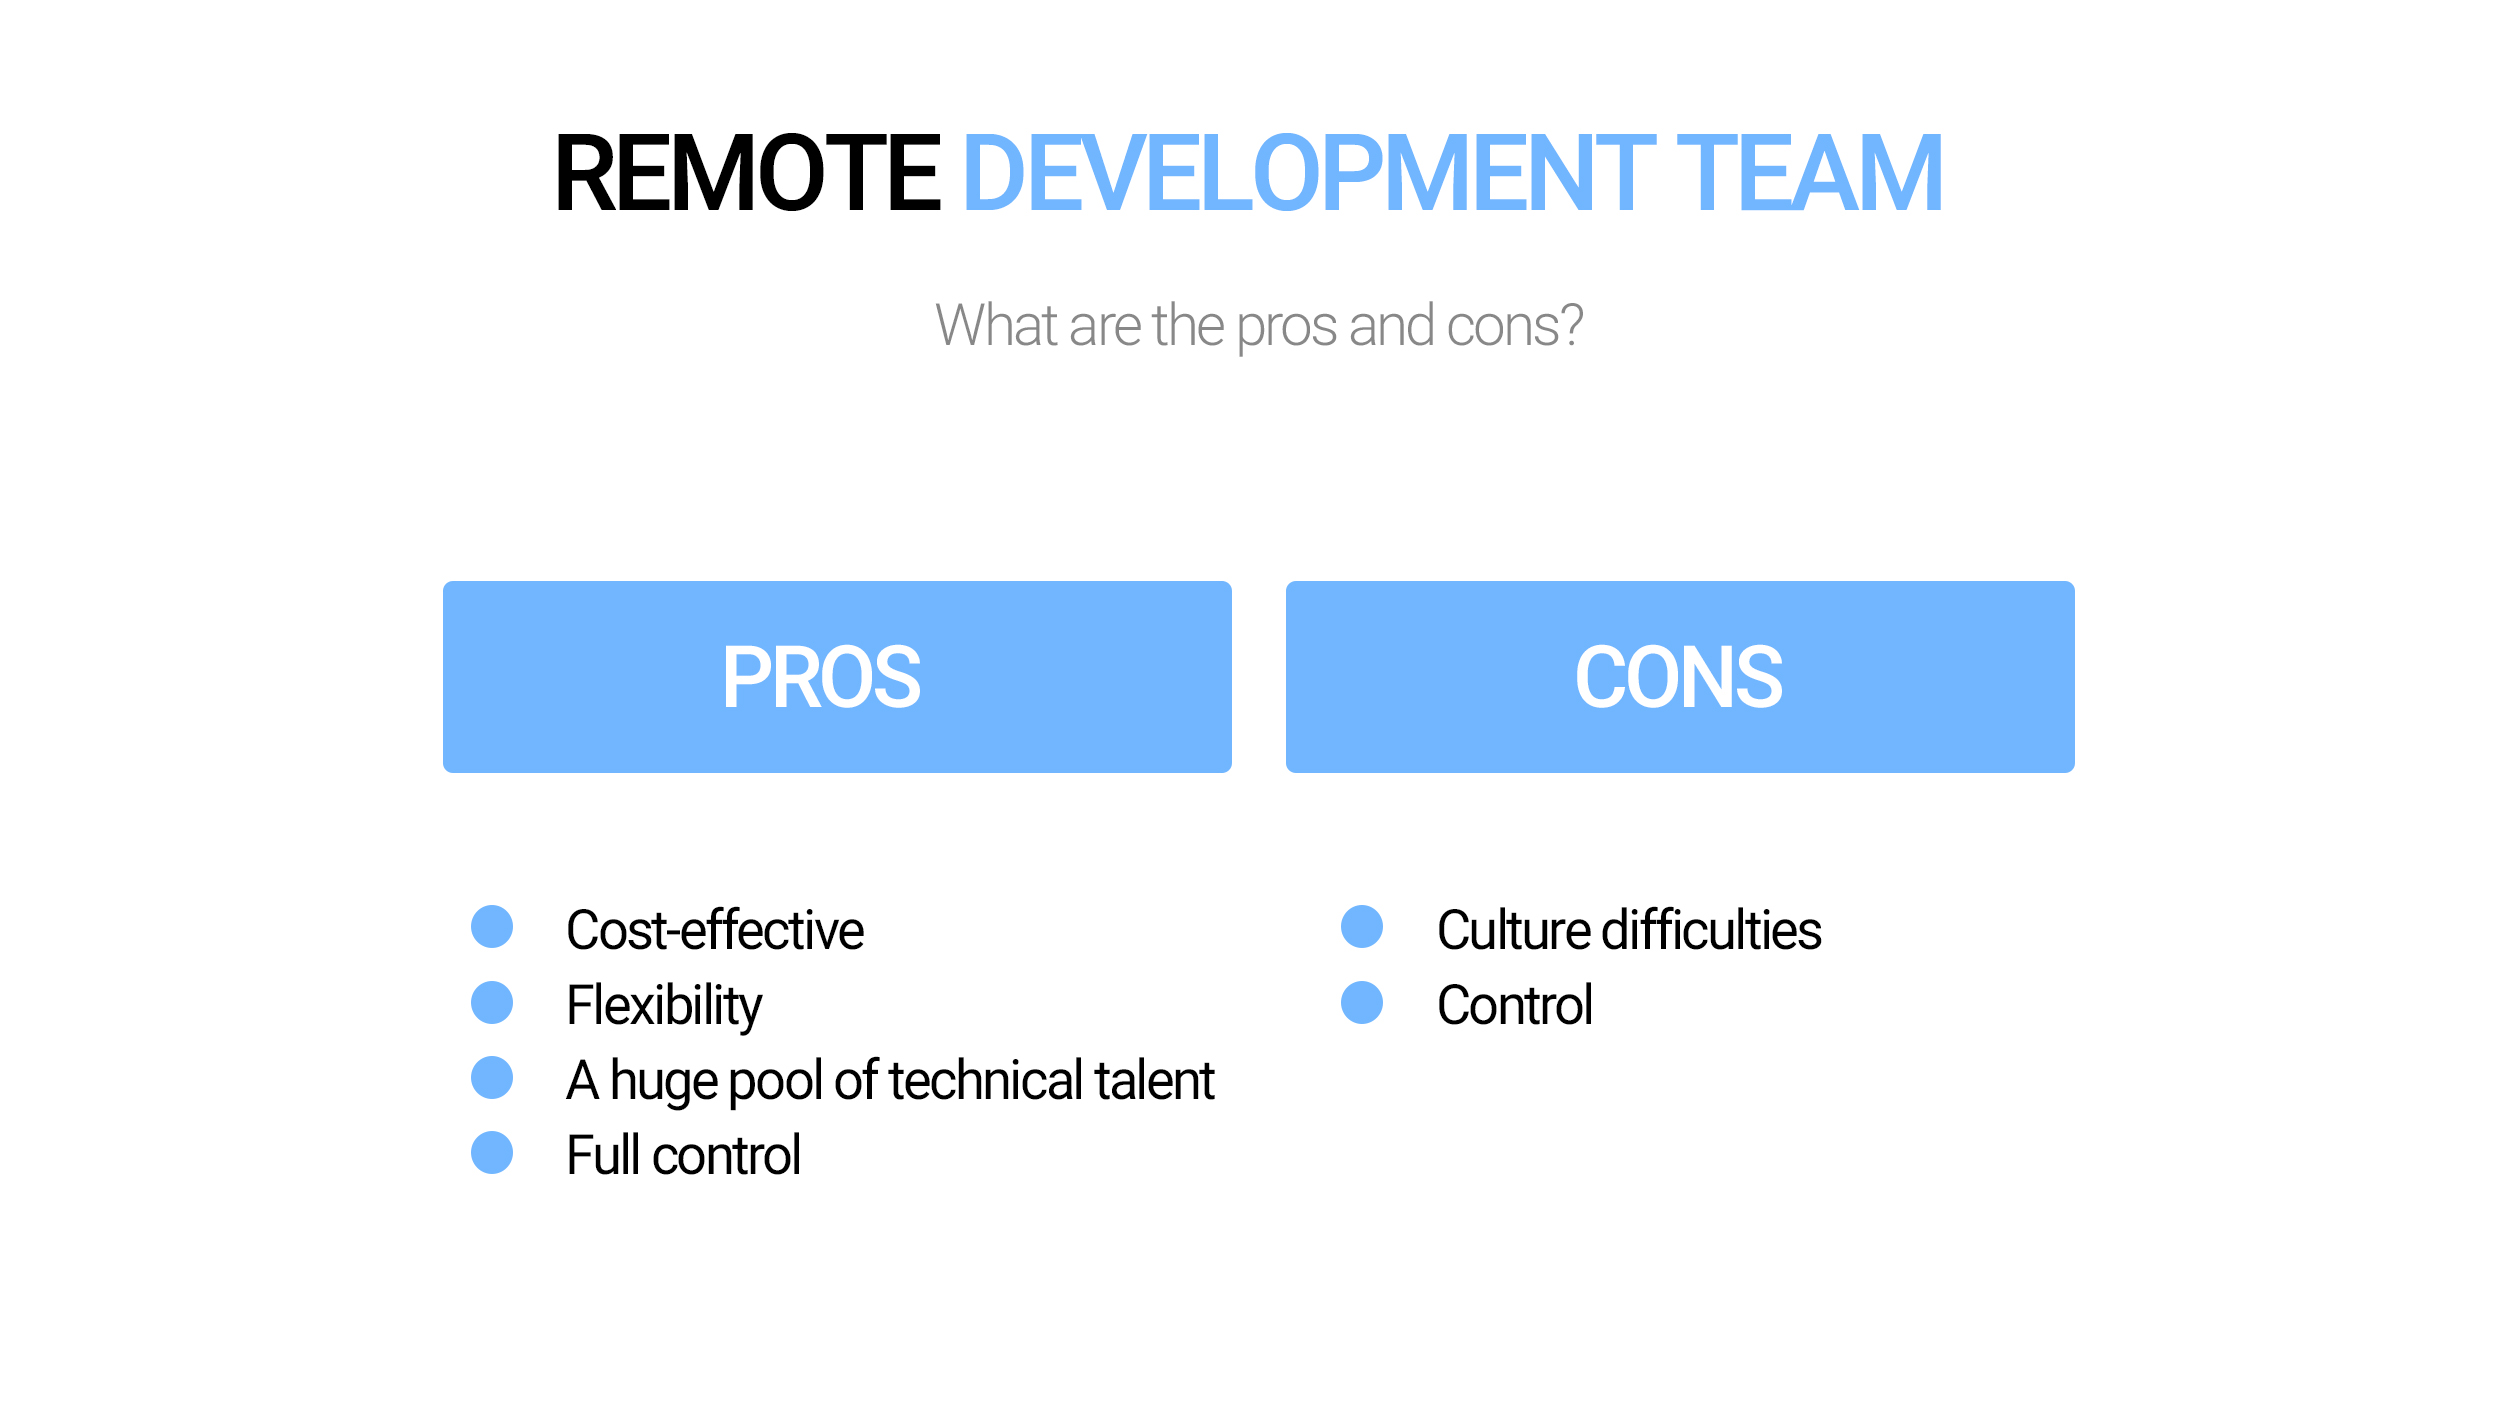 Pros and сons of the remote development teams